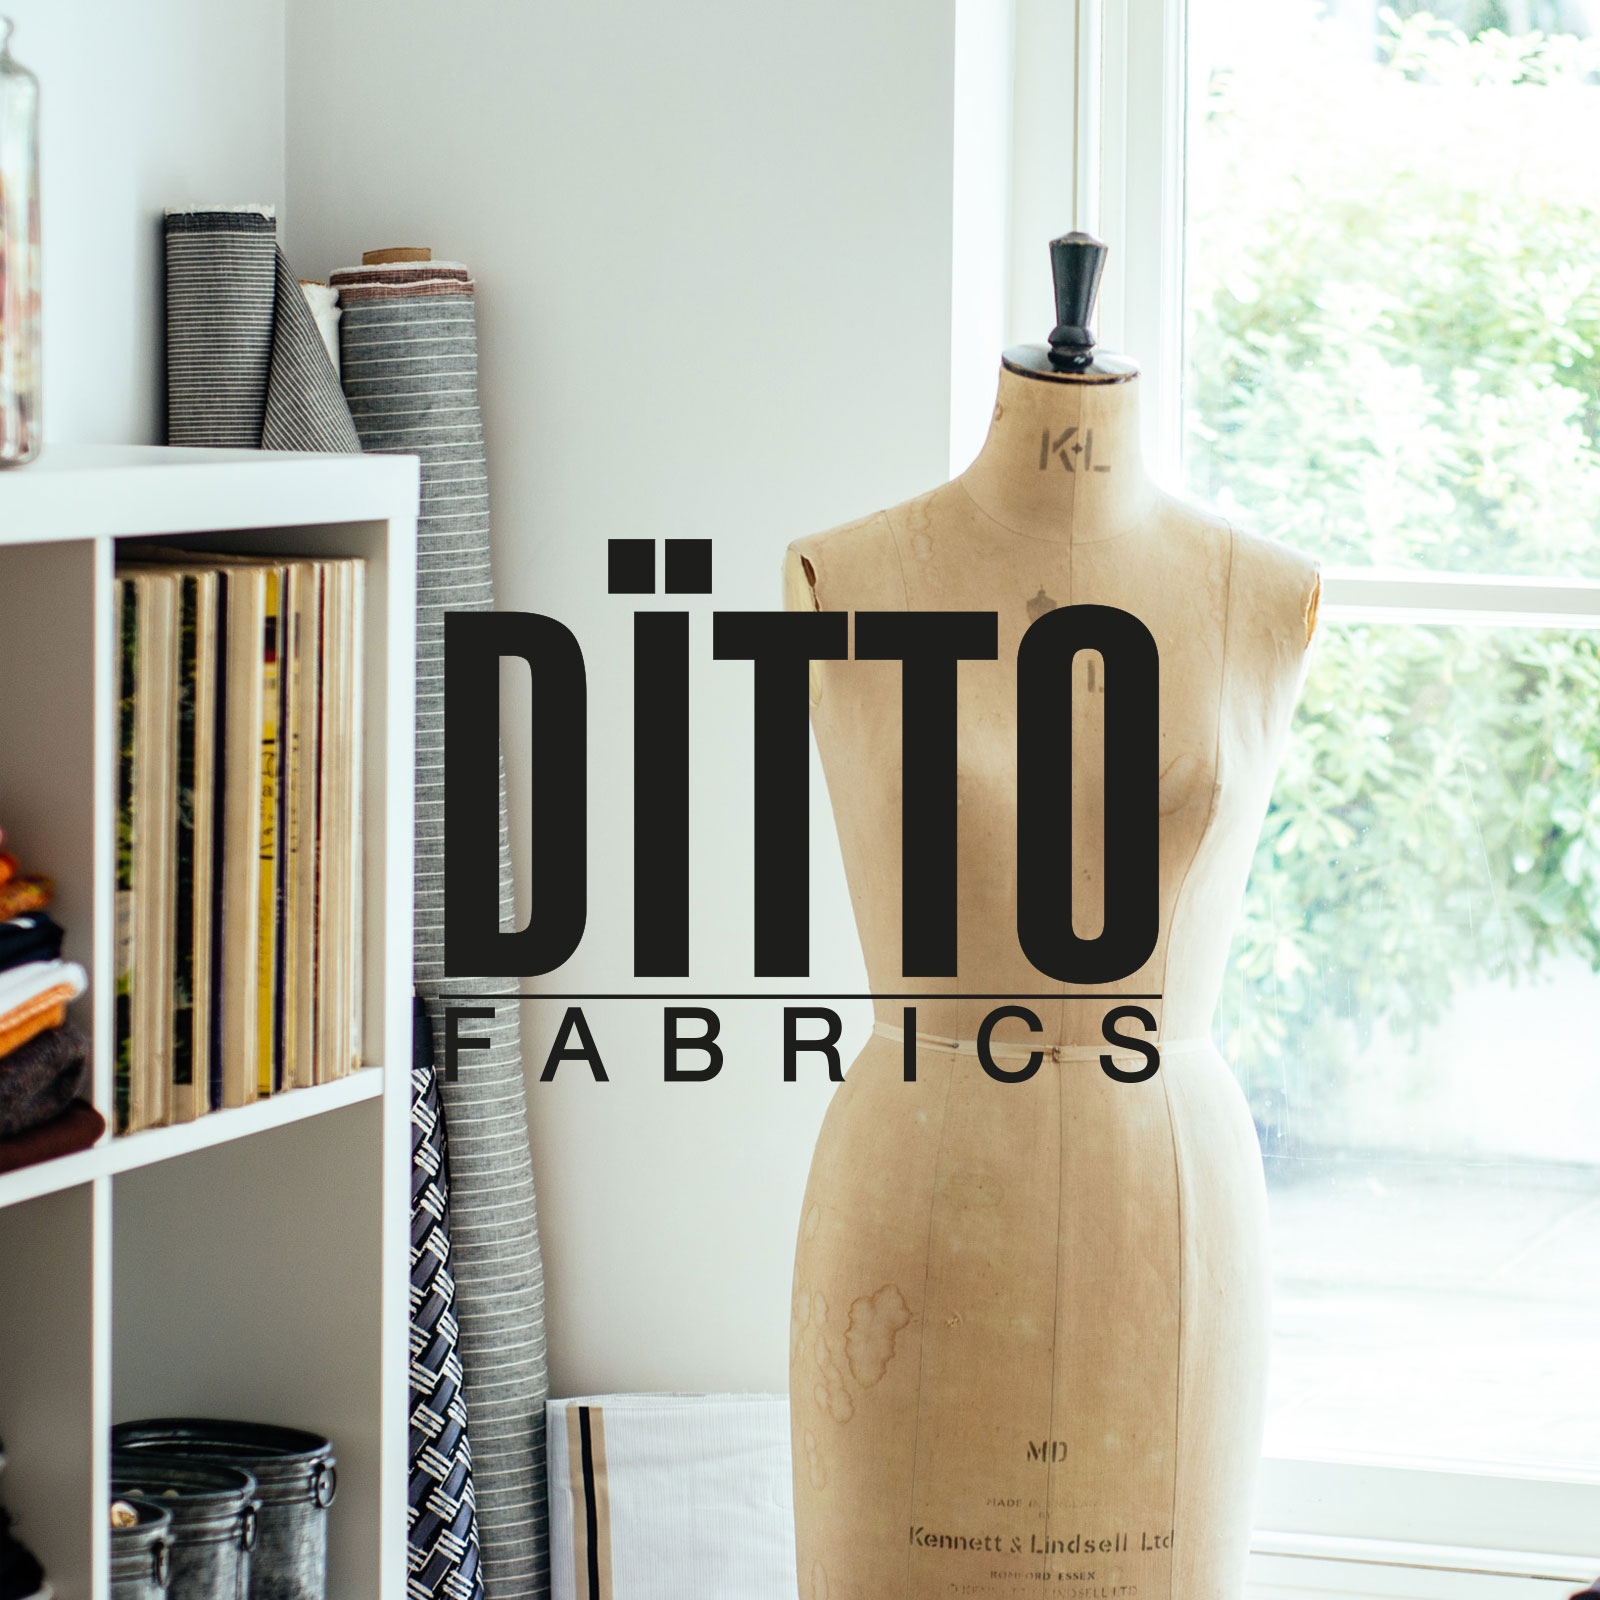 Image result for site:www.dittofabrics.co.uk